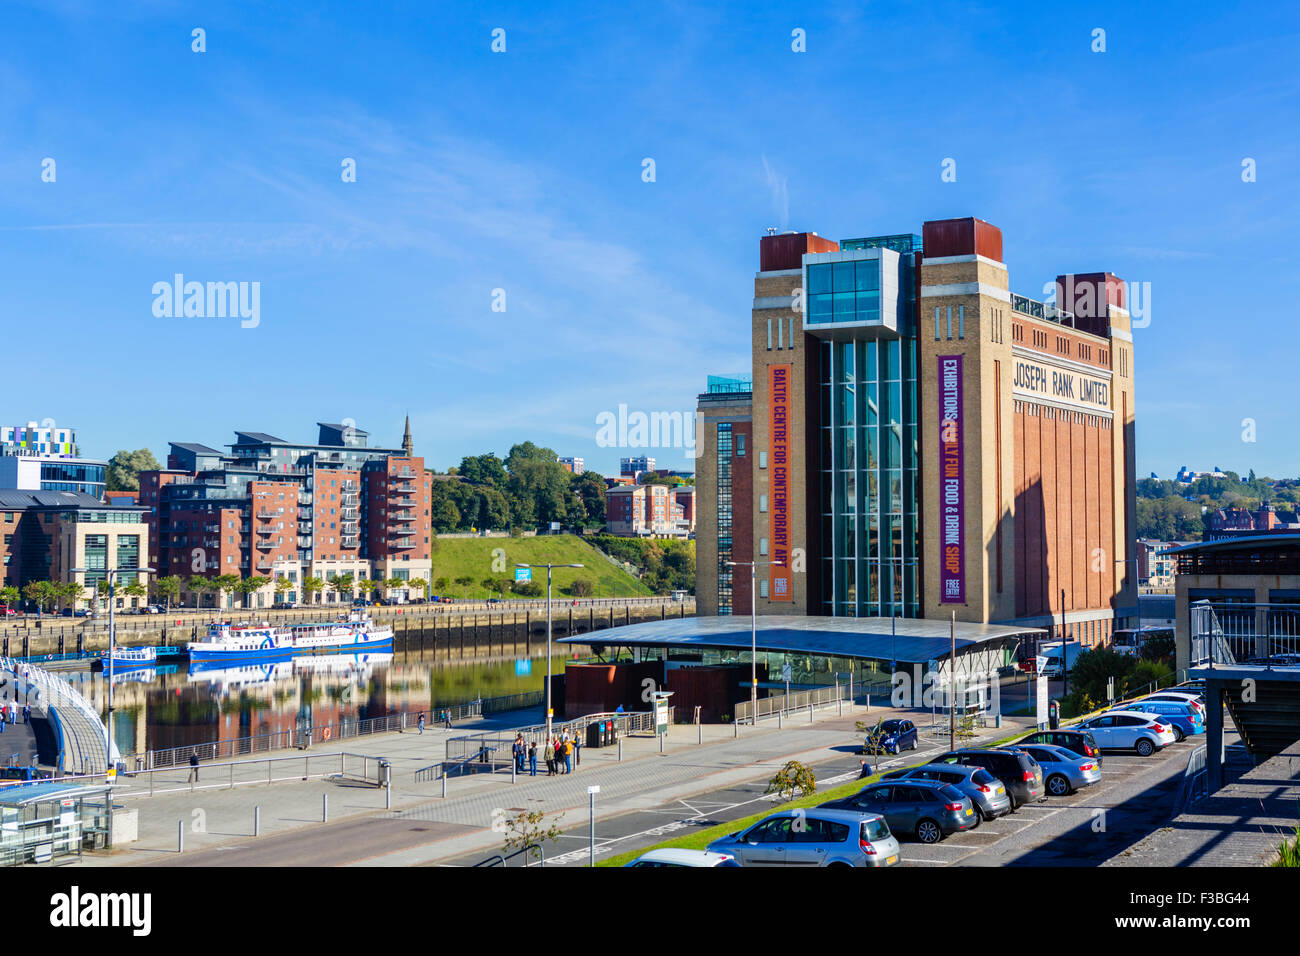 The Baltic Centre for Contemporary Arts on the River Tyne, Quayside, Gatesehead, Tyne and Wear, UK - Stock Image